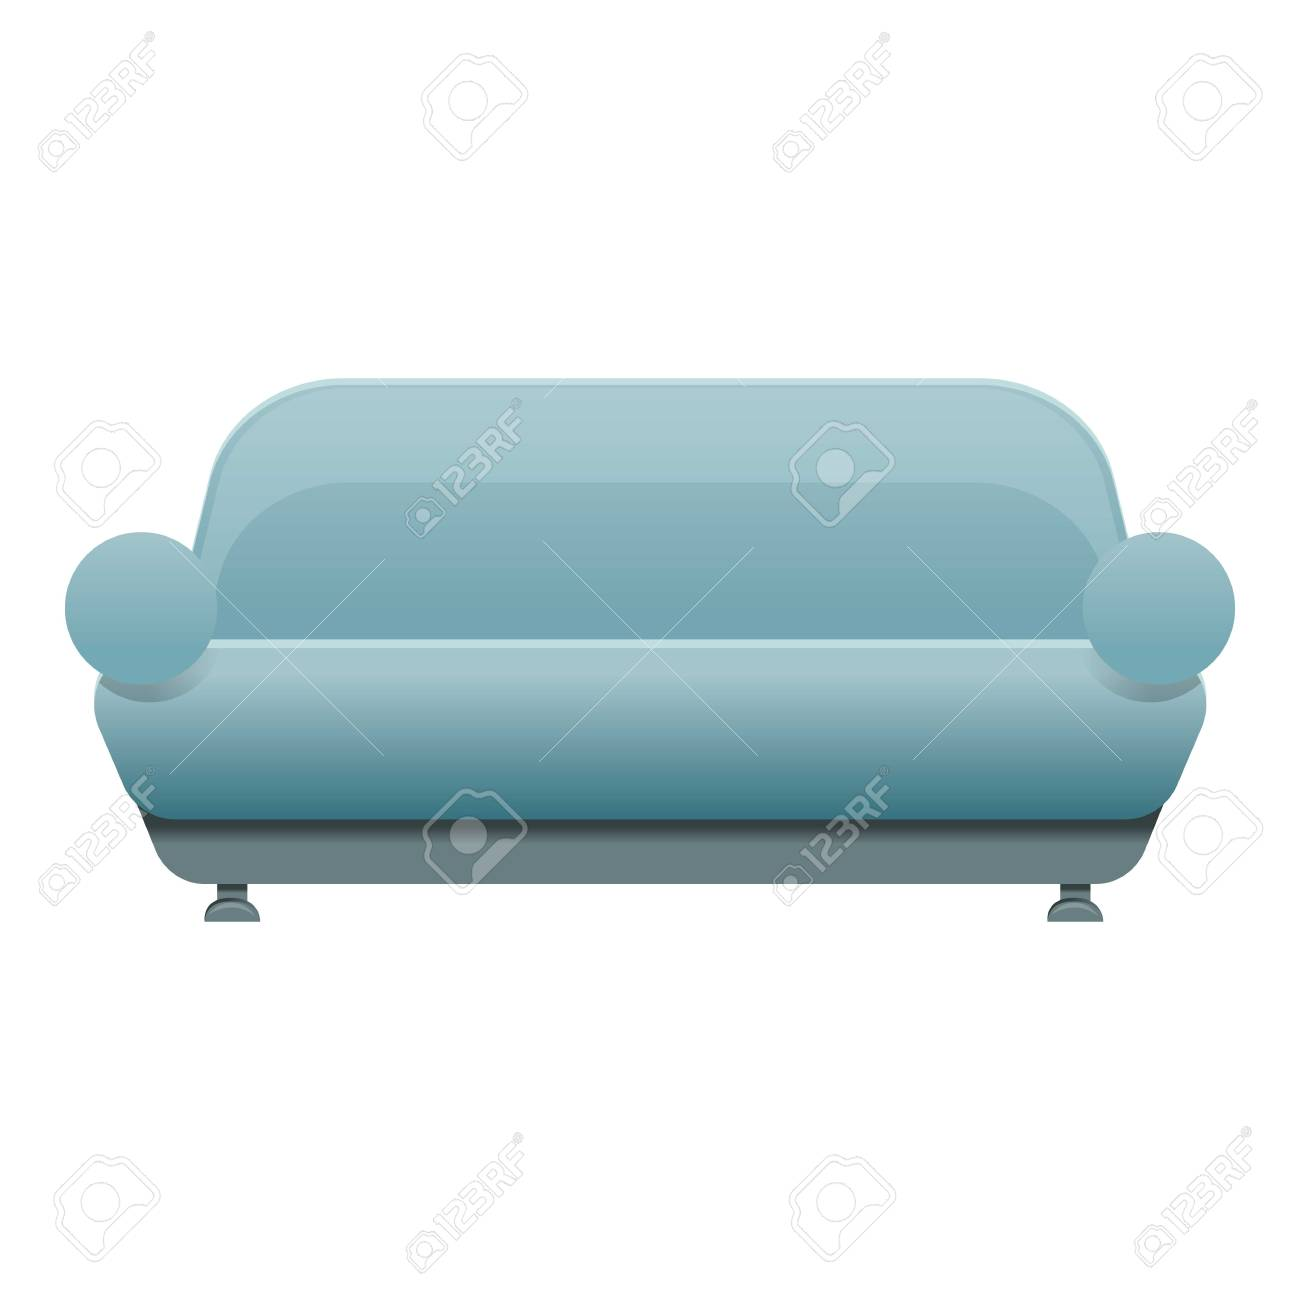 Sofa Modern Modern Sofa Icon Cartoon Of Modern Sofa Icon For Web Design Isolated On White Background